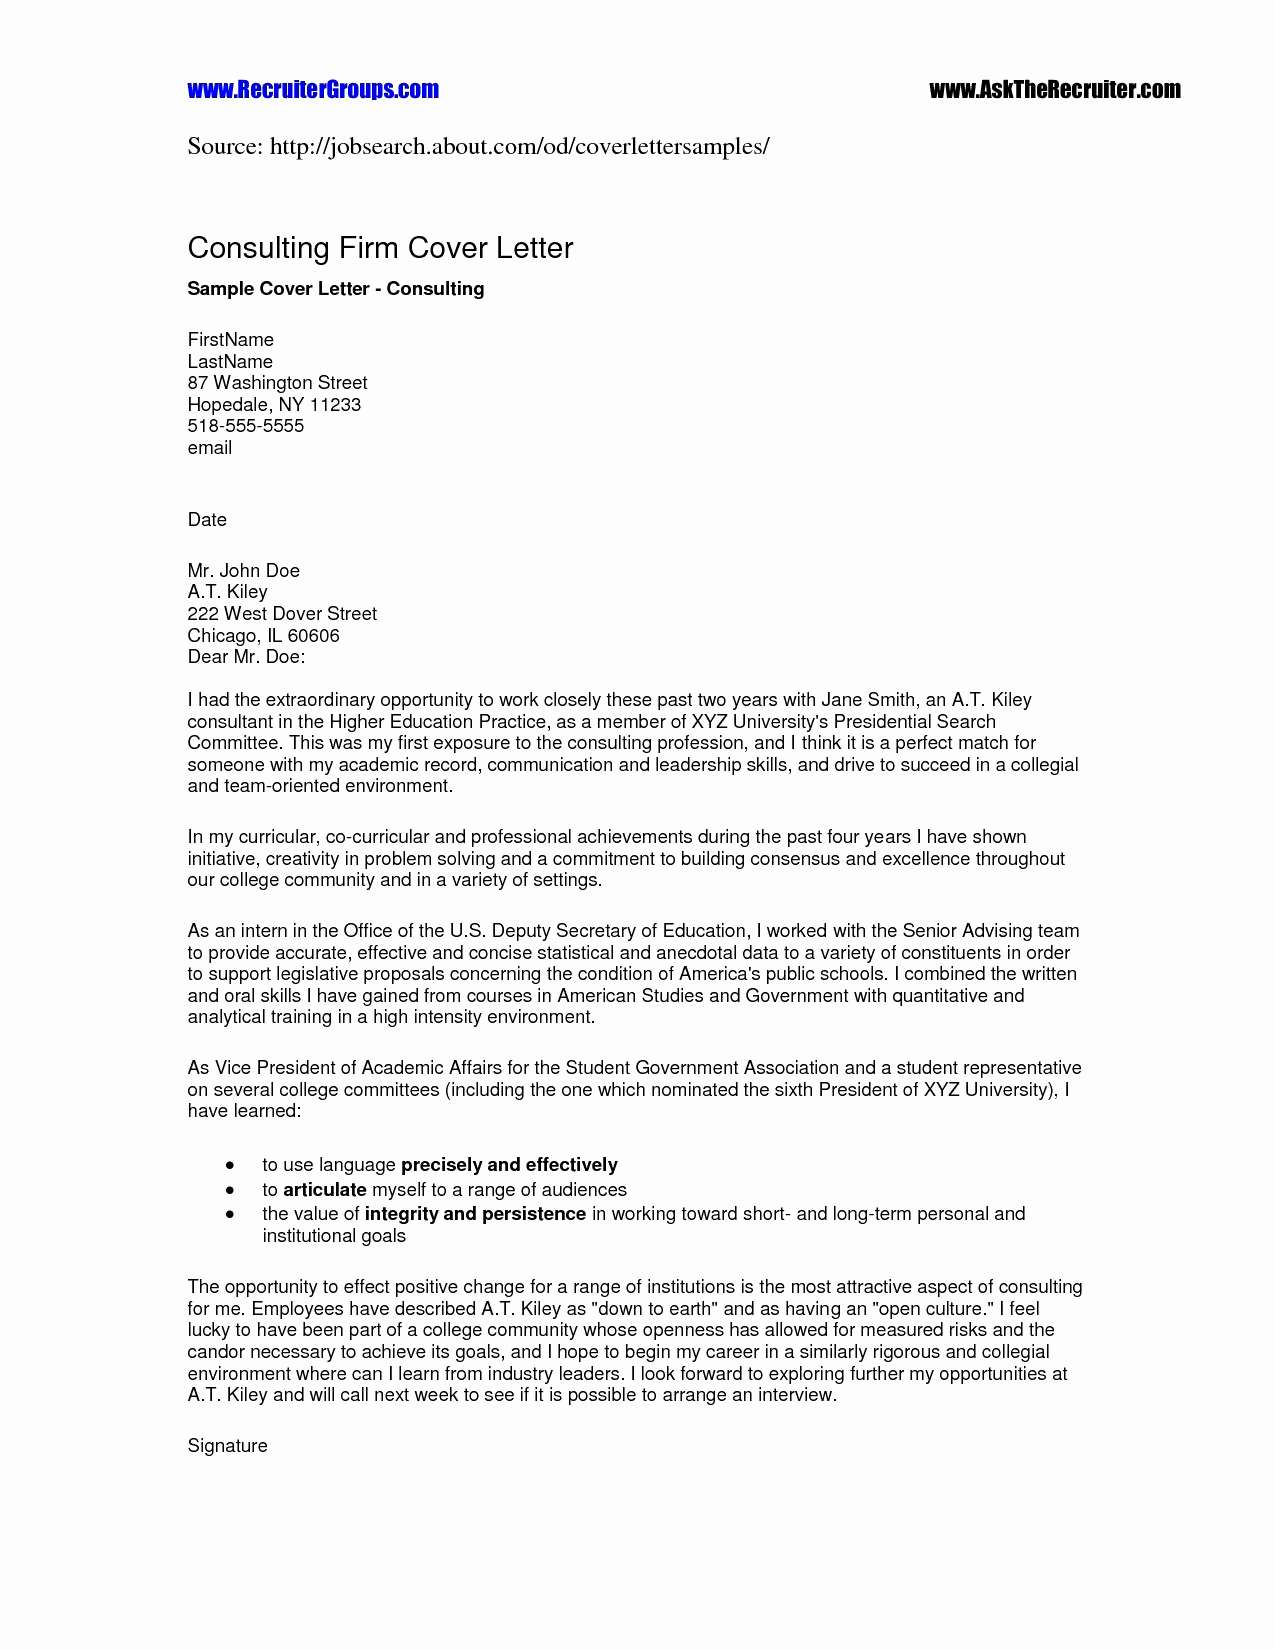 Free Collection Letter Template - Resume Genius Cover Letter Lovely Cover Letter Template Image